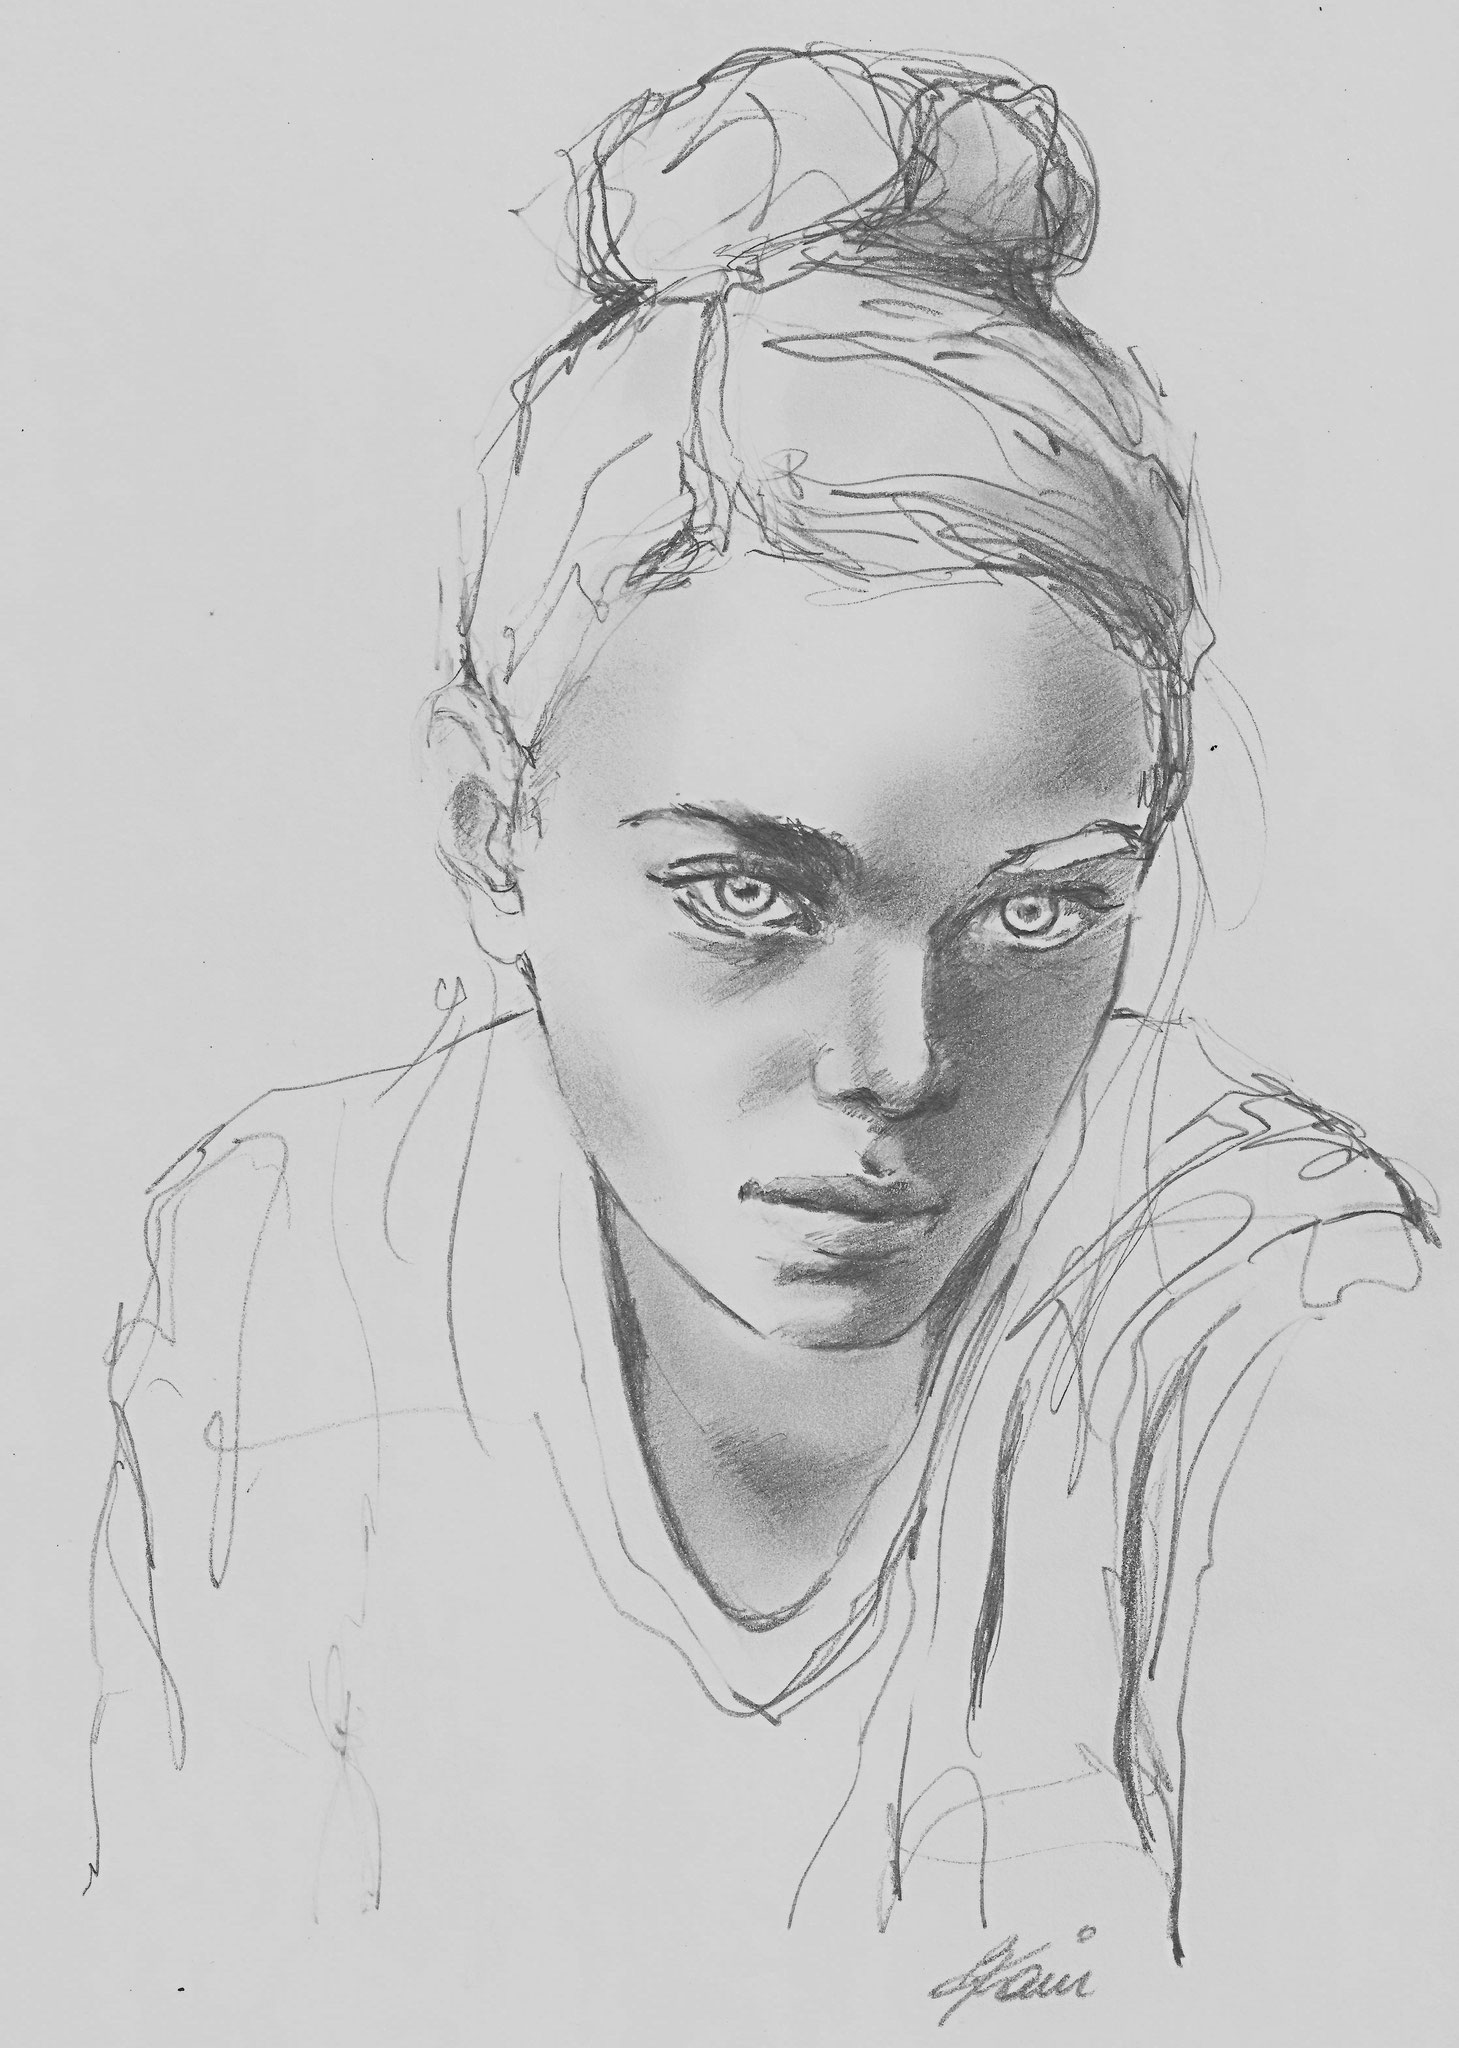 Portrait, 21 x 29,7 cm, pencils on paper